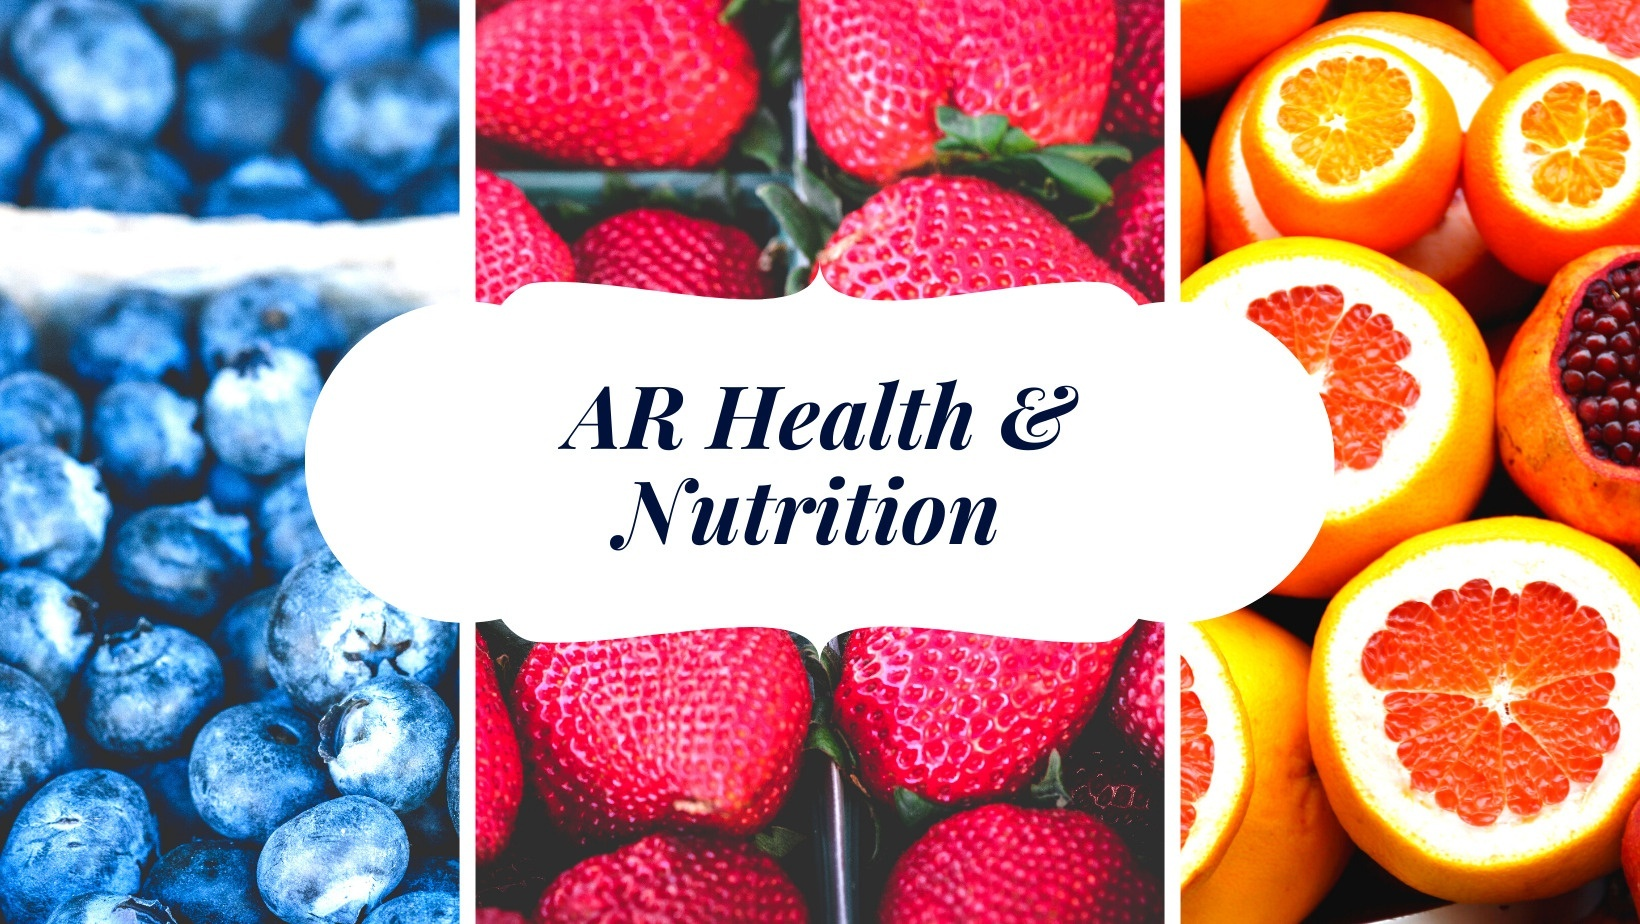 AR Health & Nutrition on Visibility Kings | Juice Plus+ Distributor | (800) 315-1624 | Fruit and Vegetable Nutrition For A Healthy Lifestyle.